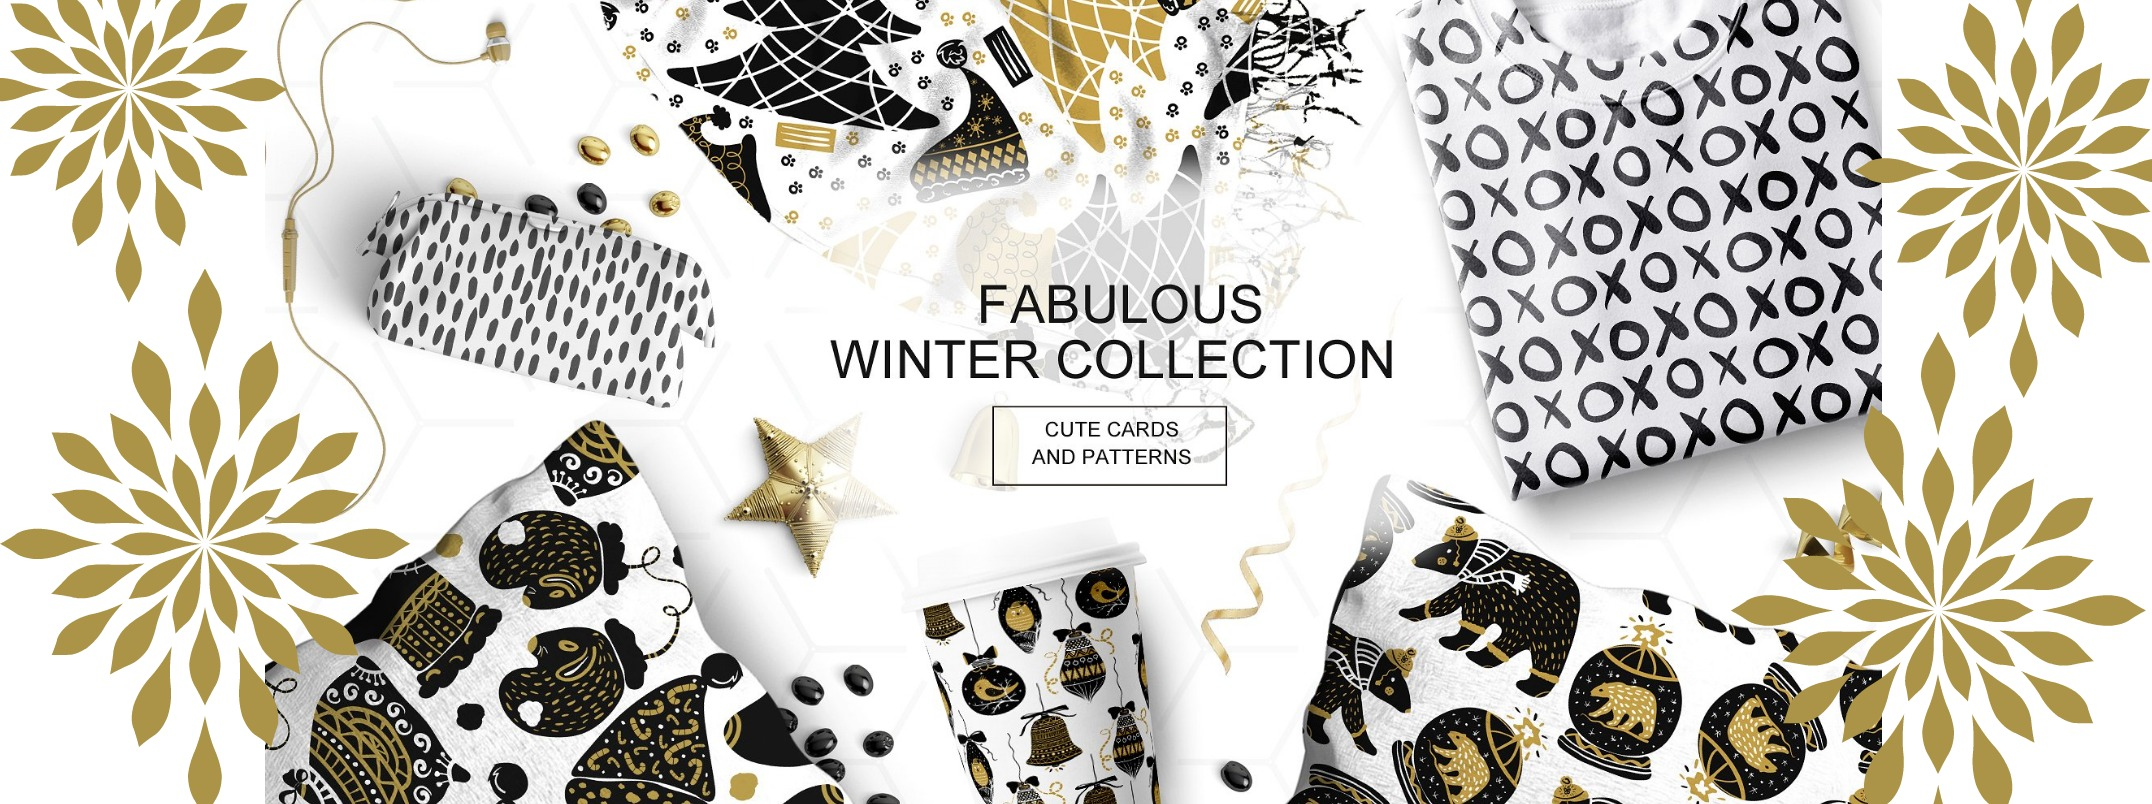 Free Fabulous Winter Collection